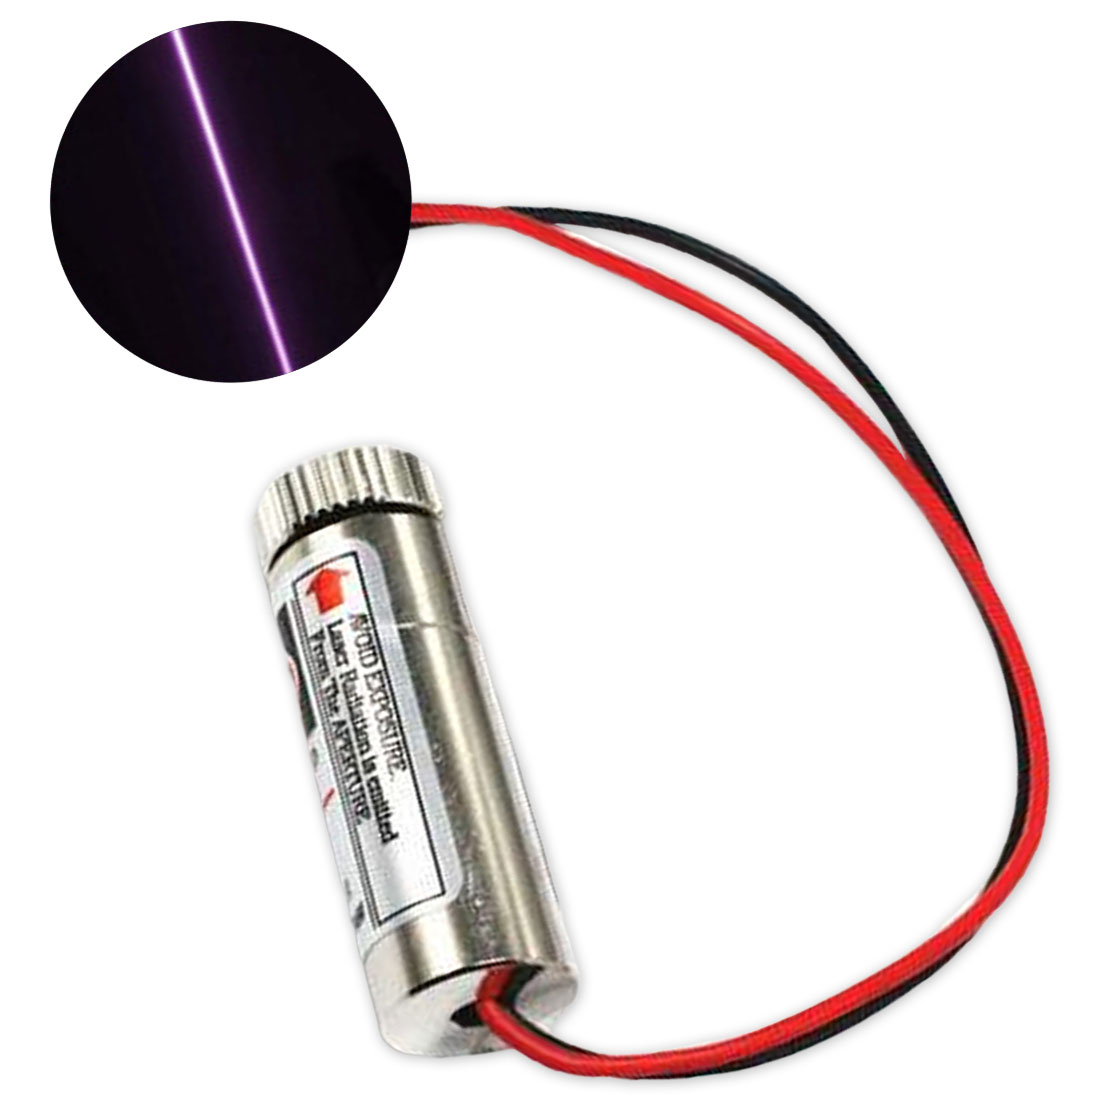 New 650nm 5-30mW Red Point / Line / Cross Laser Module Head Glass Lens Focusable Industrial Class